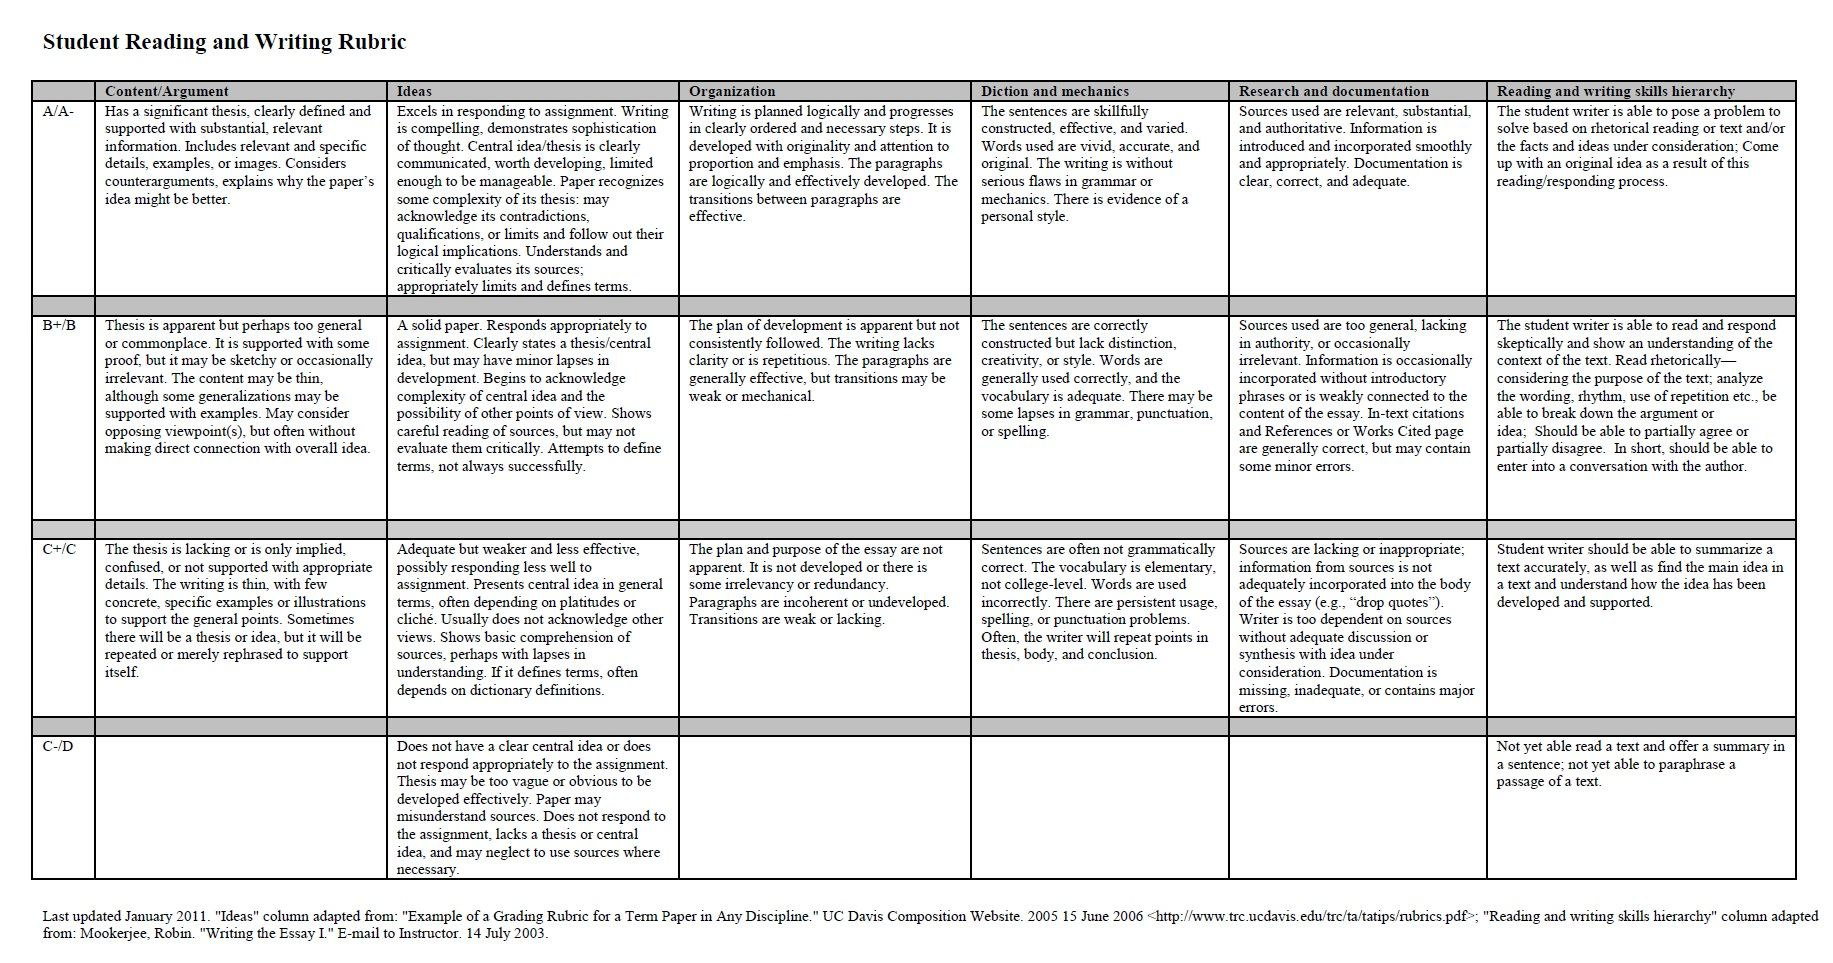 Using A Rubric Makes Grading Writing Assignments More Consistent Fair And Helpful To The